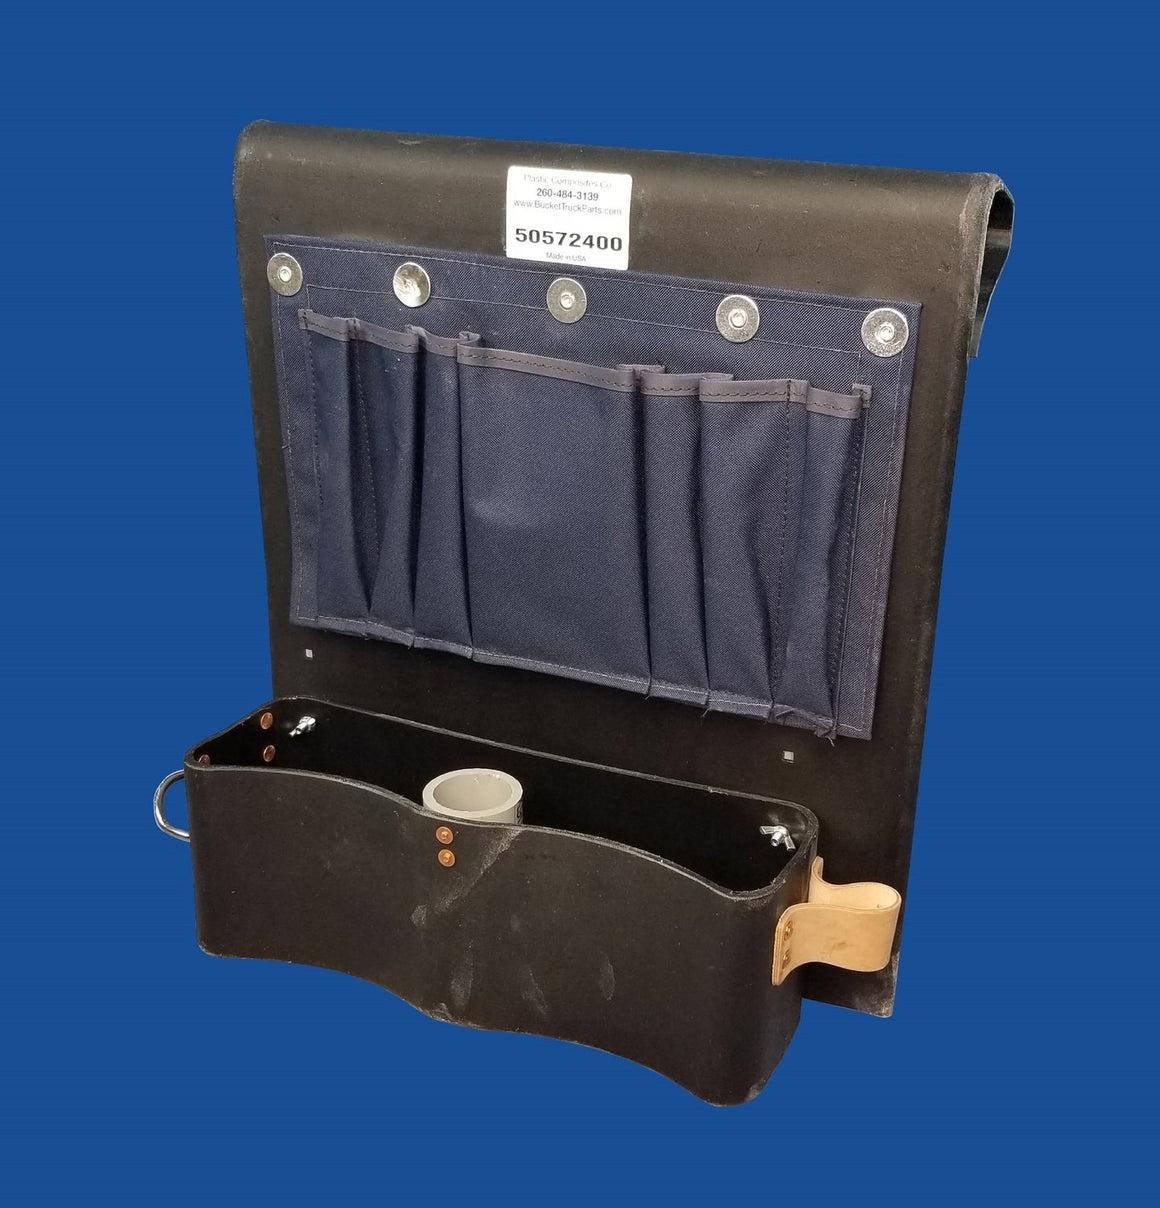 Thigh Brace Tool Tray - Tool Apron On Top - Bucket Truck Parts